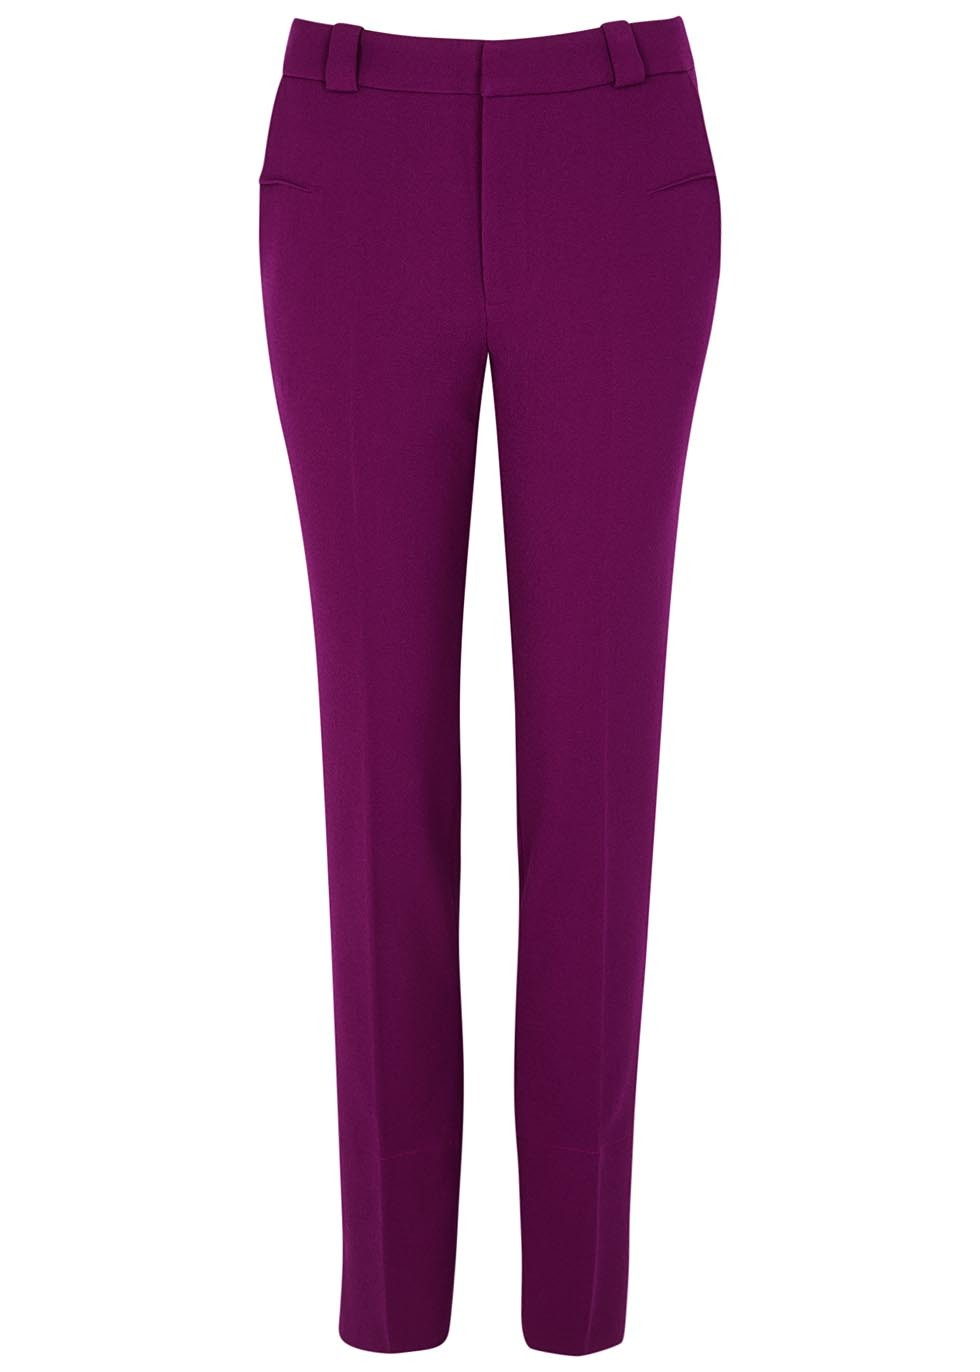 Lacerta Purple Slim Leg Trousers - length: standard; pattern: plain; waist: mid/regular rise; predominant colour: purple; occasions: casual, creative work; fibres: polyester/polyamide - stretch; fit: slim leg; pattern type: fabric; texture group: woven light midweight; style: standard; season: a/w 2016; wardrobe: highlight